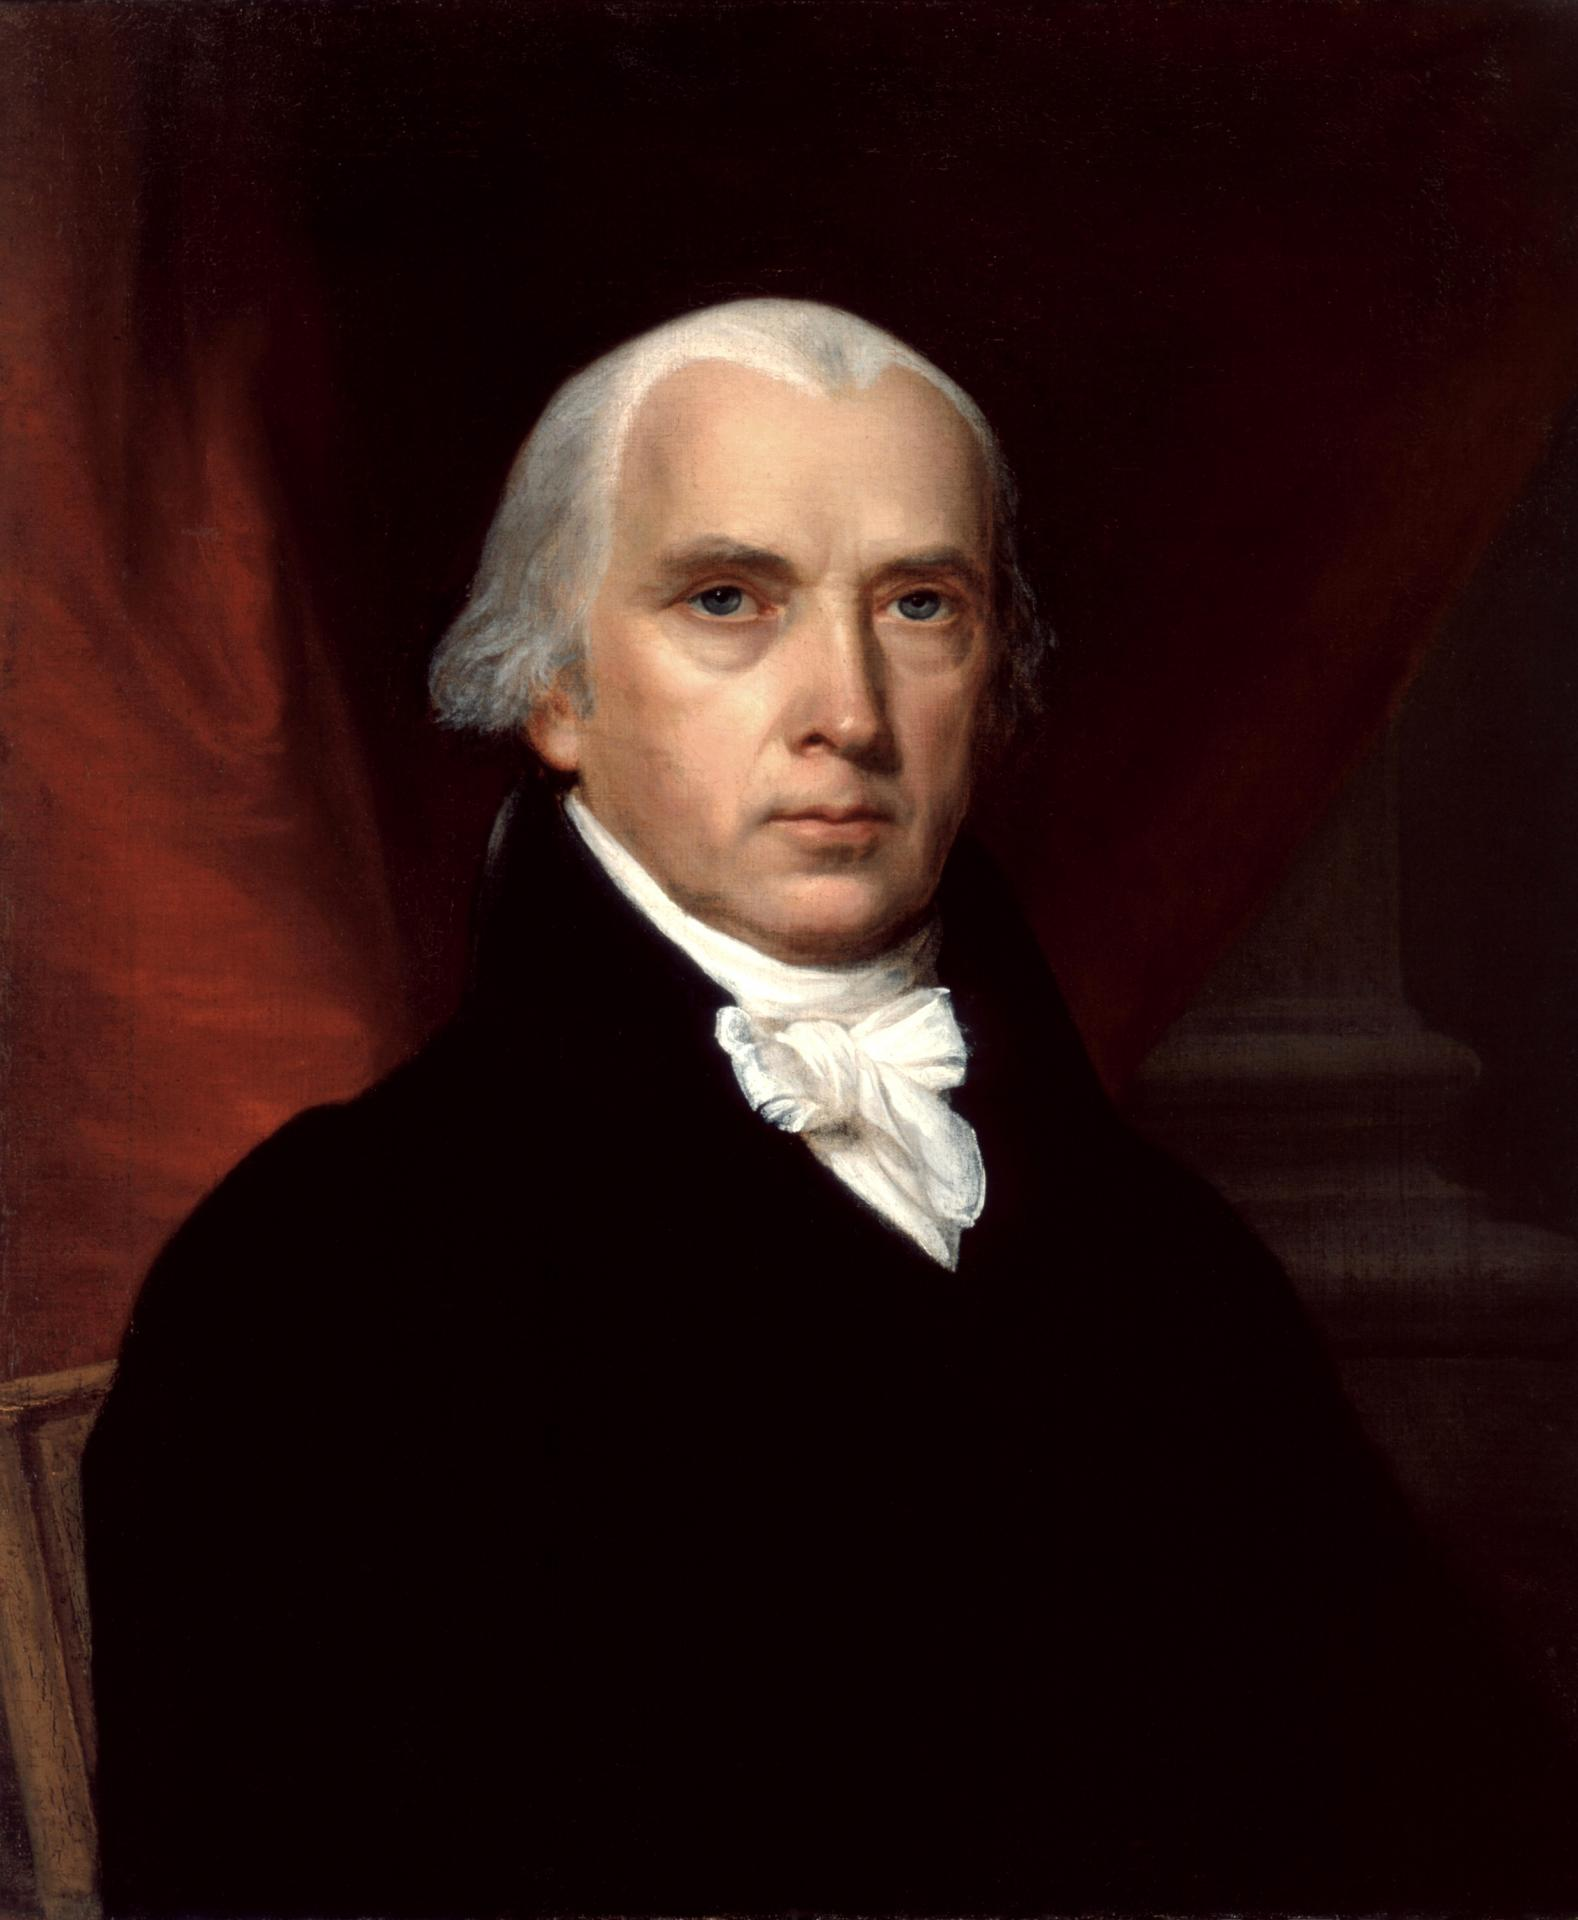 a history of james madison and benjamin franklins involvement in the constitutional convention Benjamin franklin's final speech in the constitutional convention from the notes of james madison mr president: i confess that i do not i doubt too whether any other convention we can obtain, may be able to make a better constitution: for when you assemble a number of men to have.